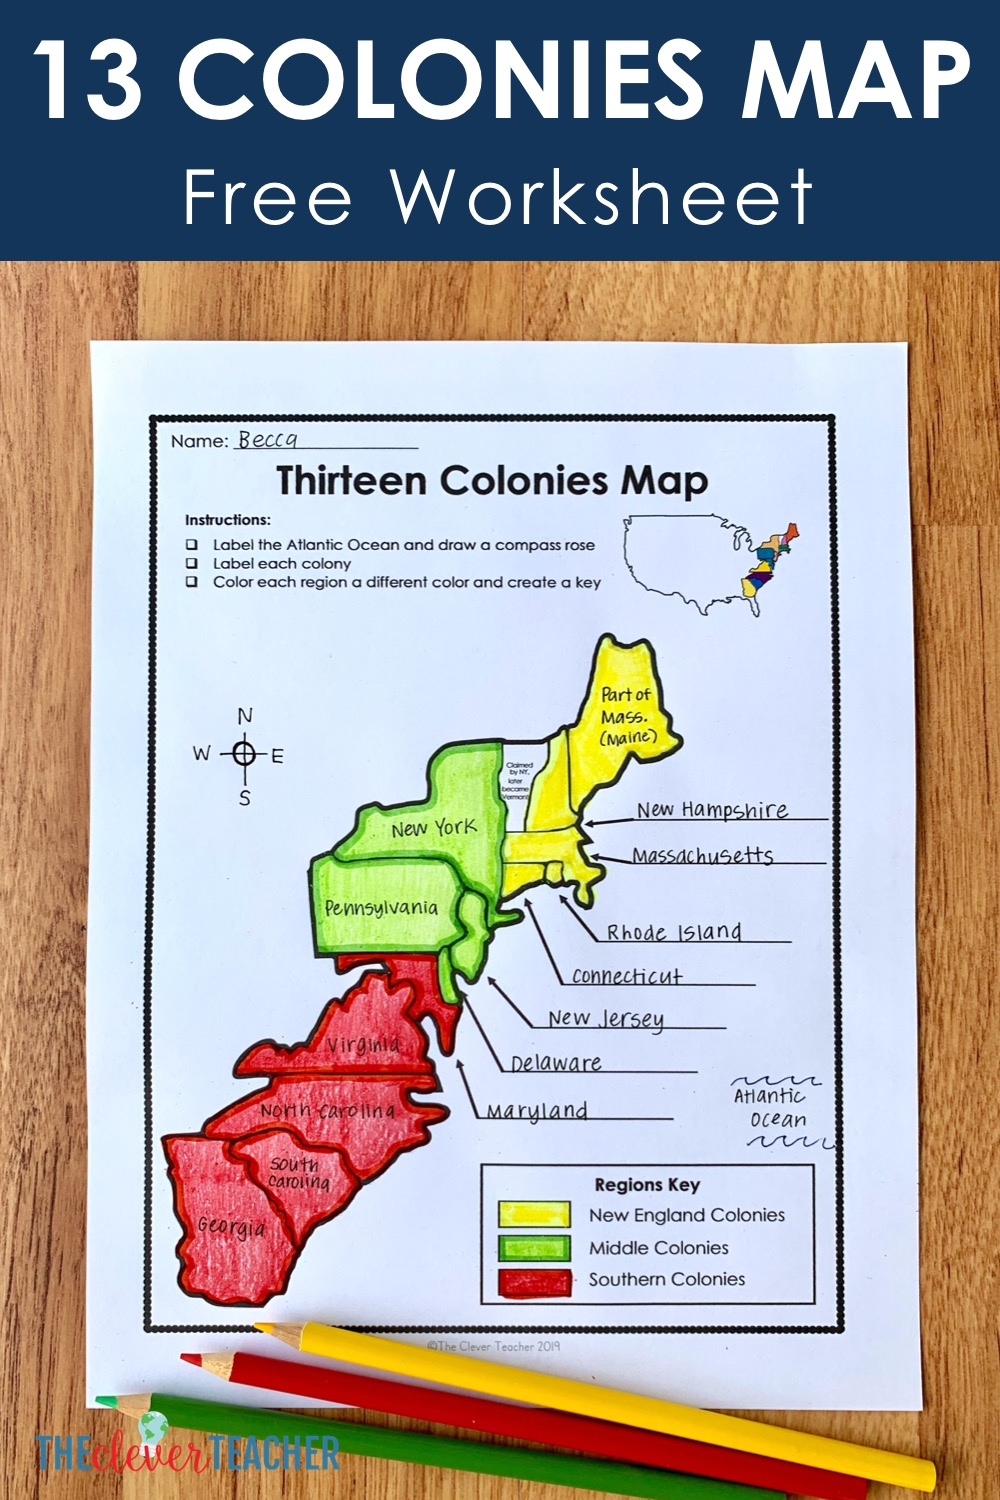 medium resolution of 13 Colonies Free Map Worksheet and Lesson for students